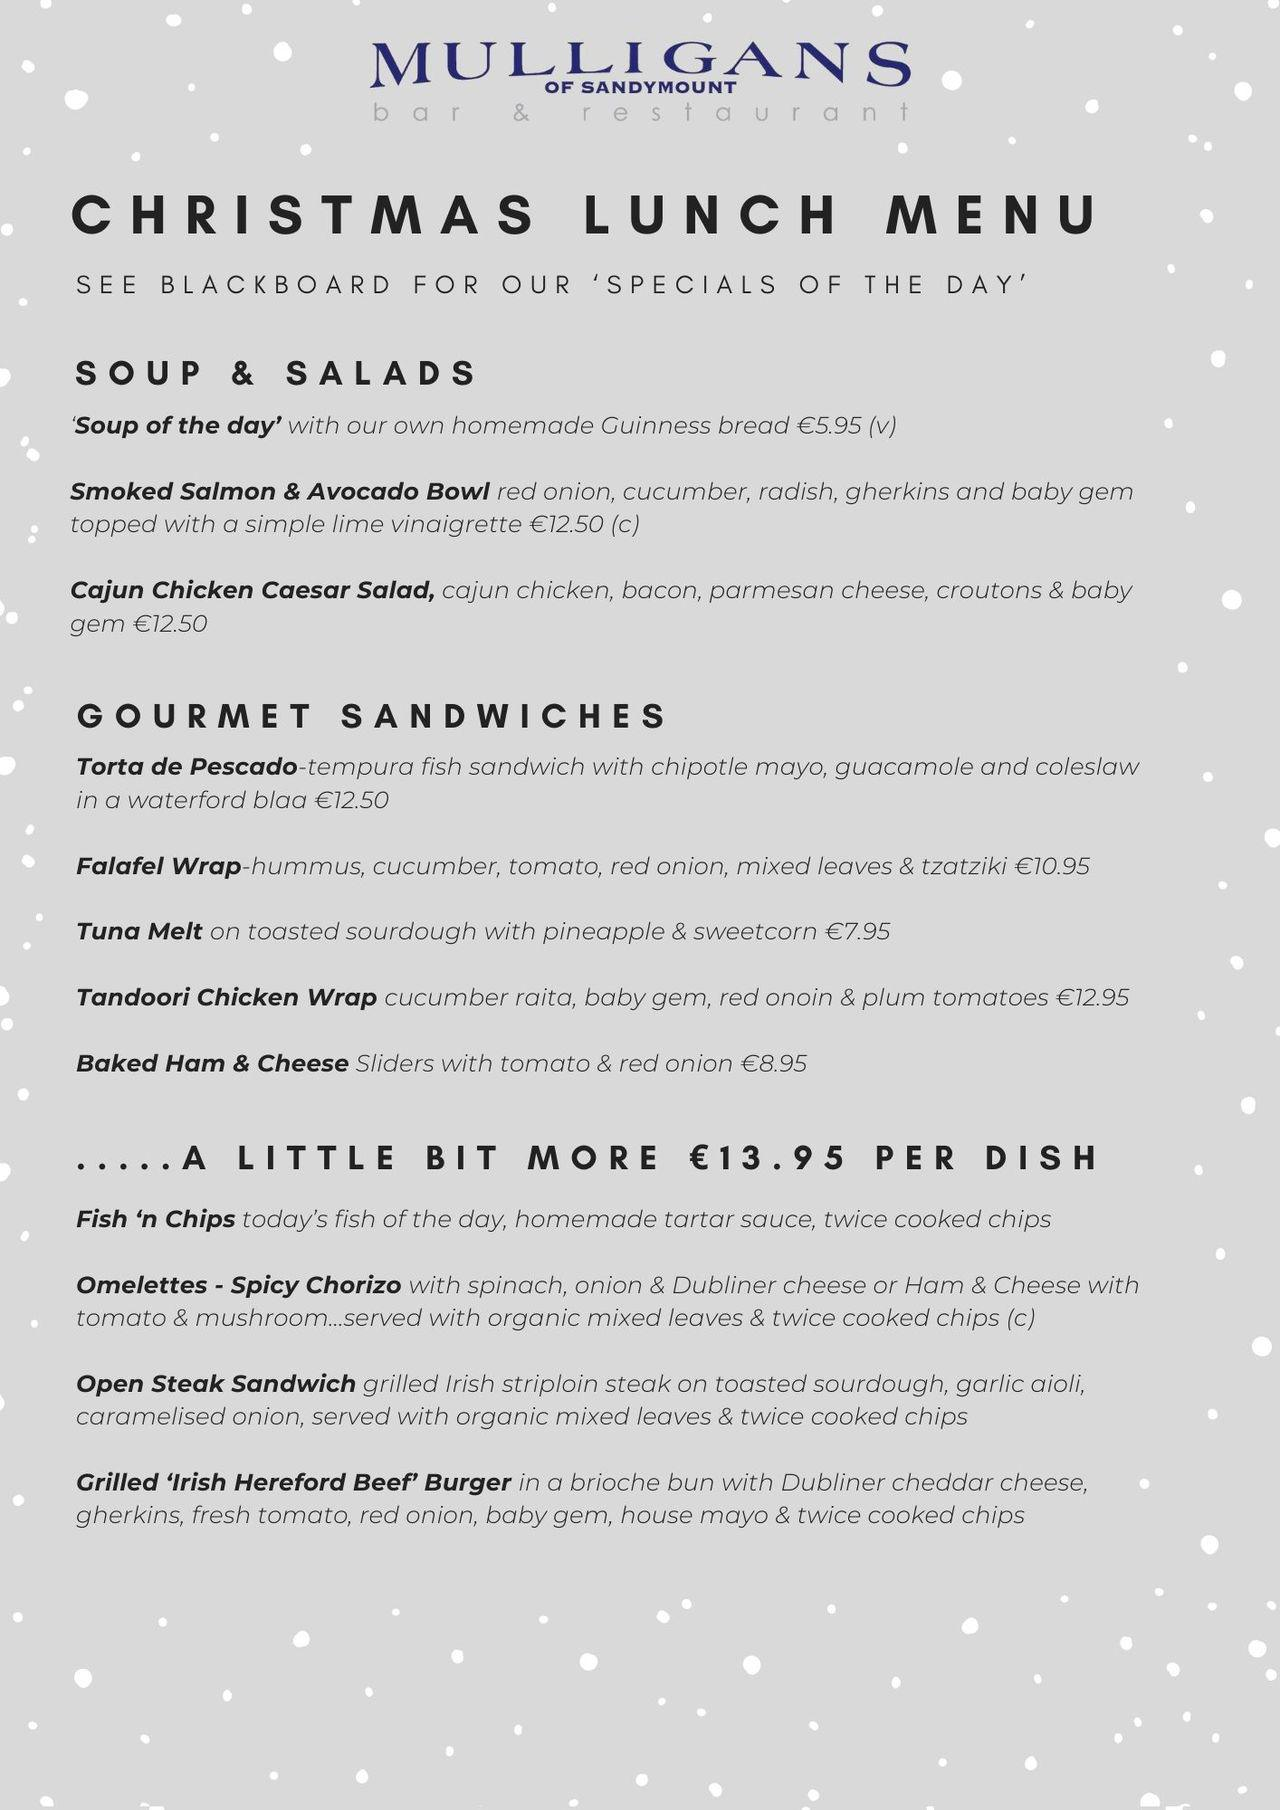 Christmas Lunch Menu (Front)